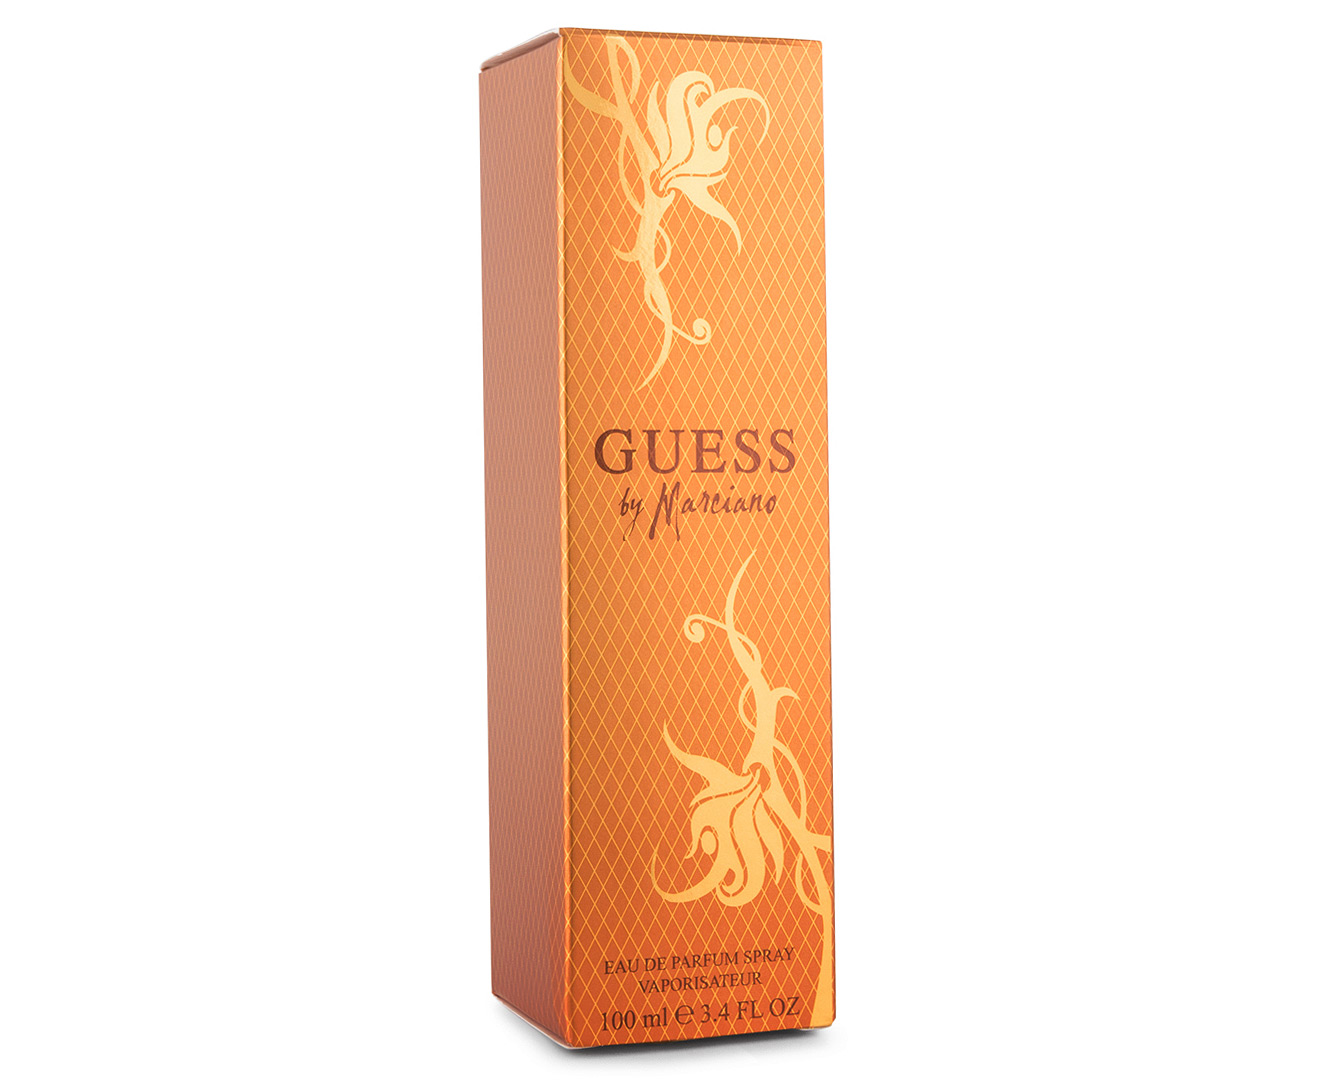 Guess By Marciano For Women Edp 100ml 3607341792471 Ebay